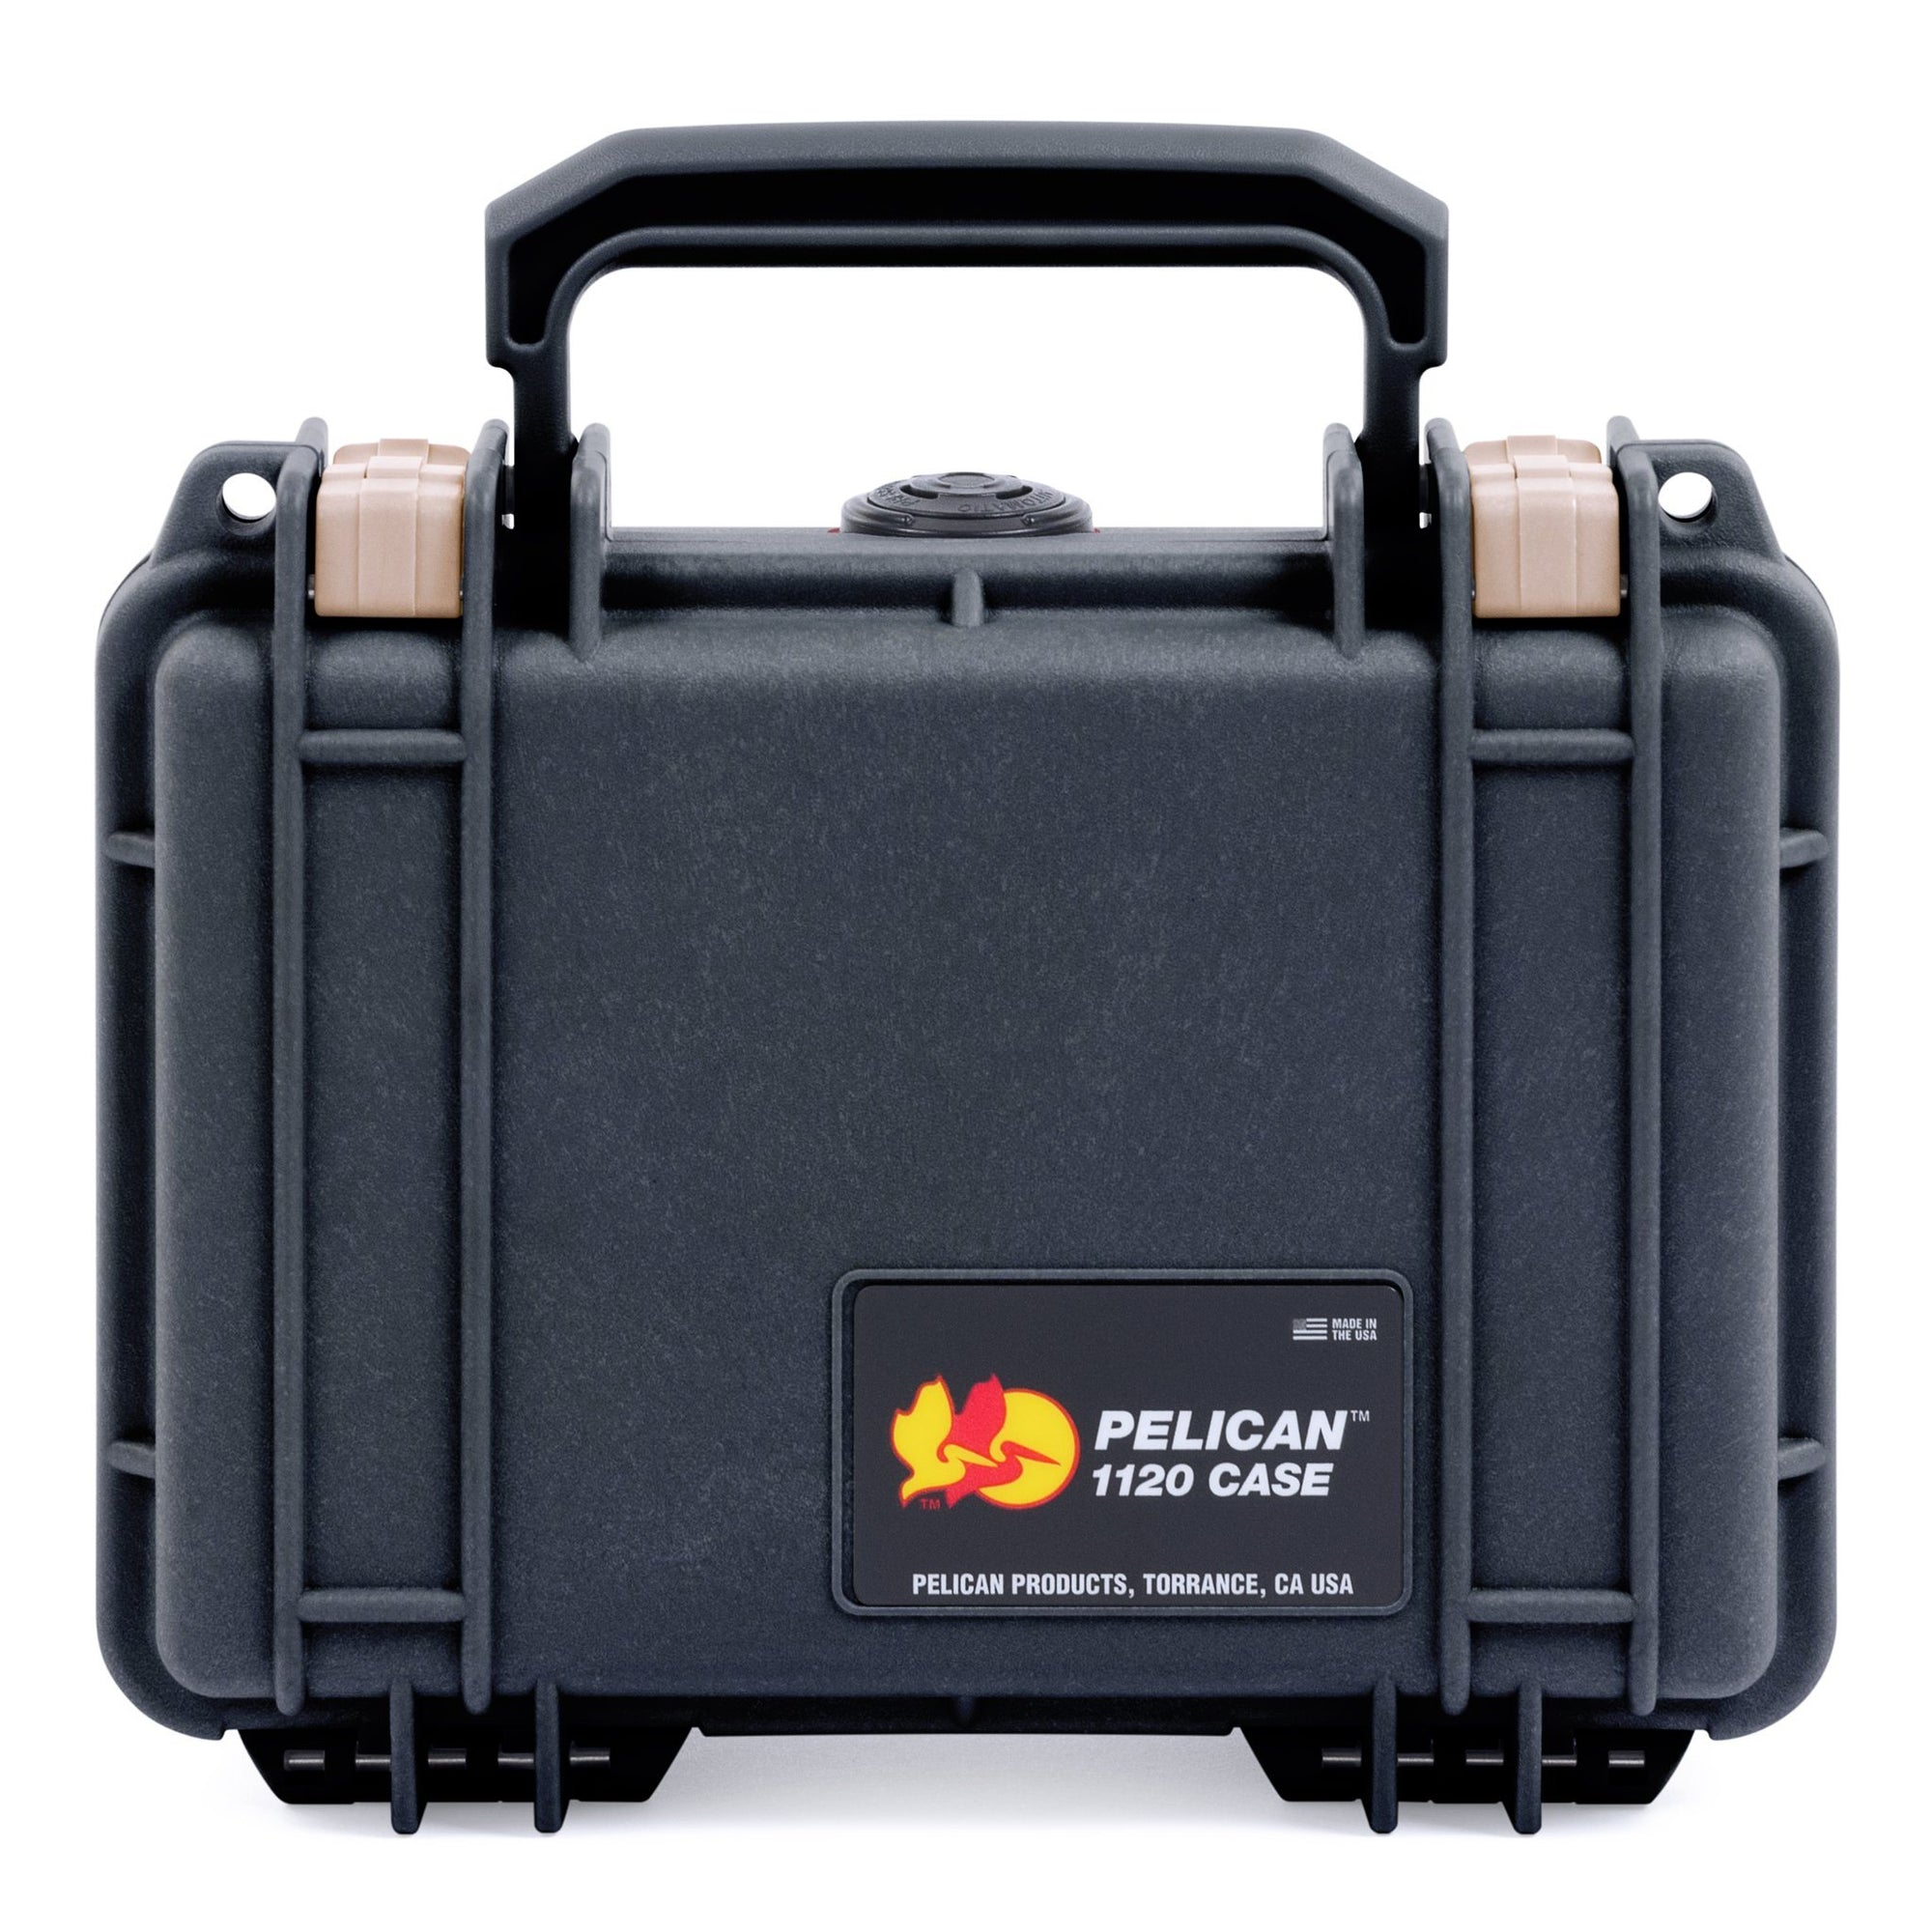 Pelican 1120 Case, Black with Desert Tan Latches - Pelican Color Case